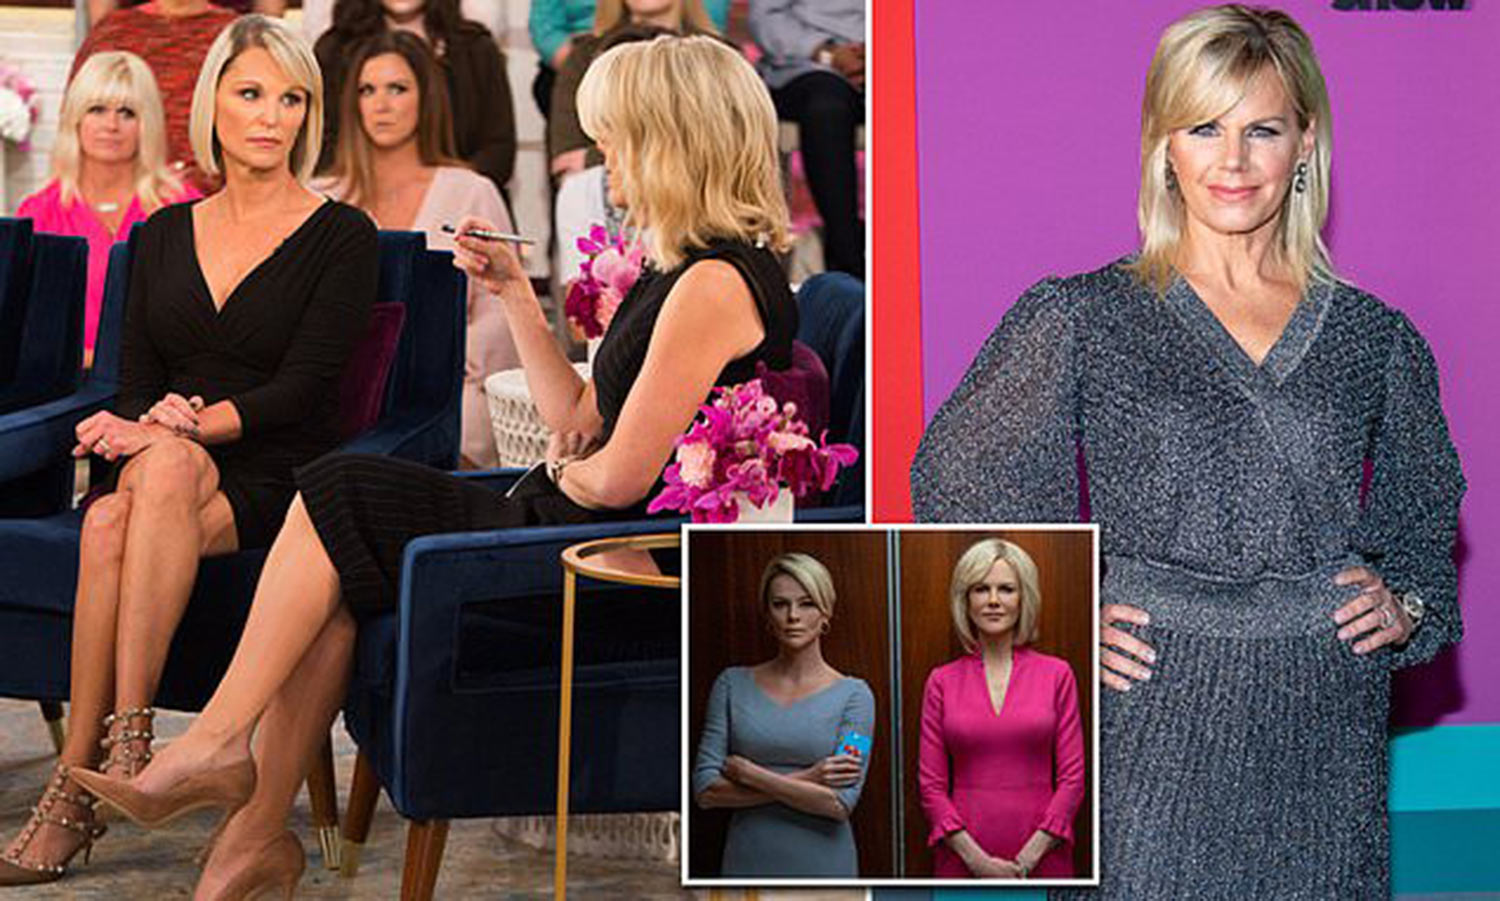 I have no house or TV career. I have nothing': Former Fox News host Juliet Huddy broke $500K NDA to speak with Bombshell writer, while Megyn Kelly refused and Gretchen Carlson was silenced by $20M settlement - featured image by Daily Mail